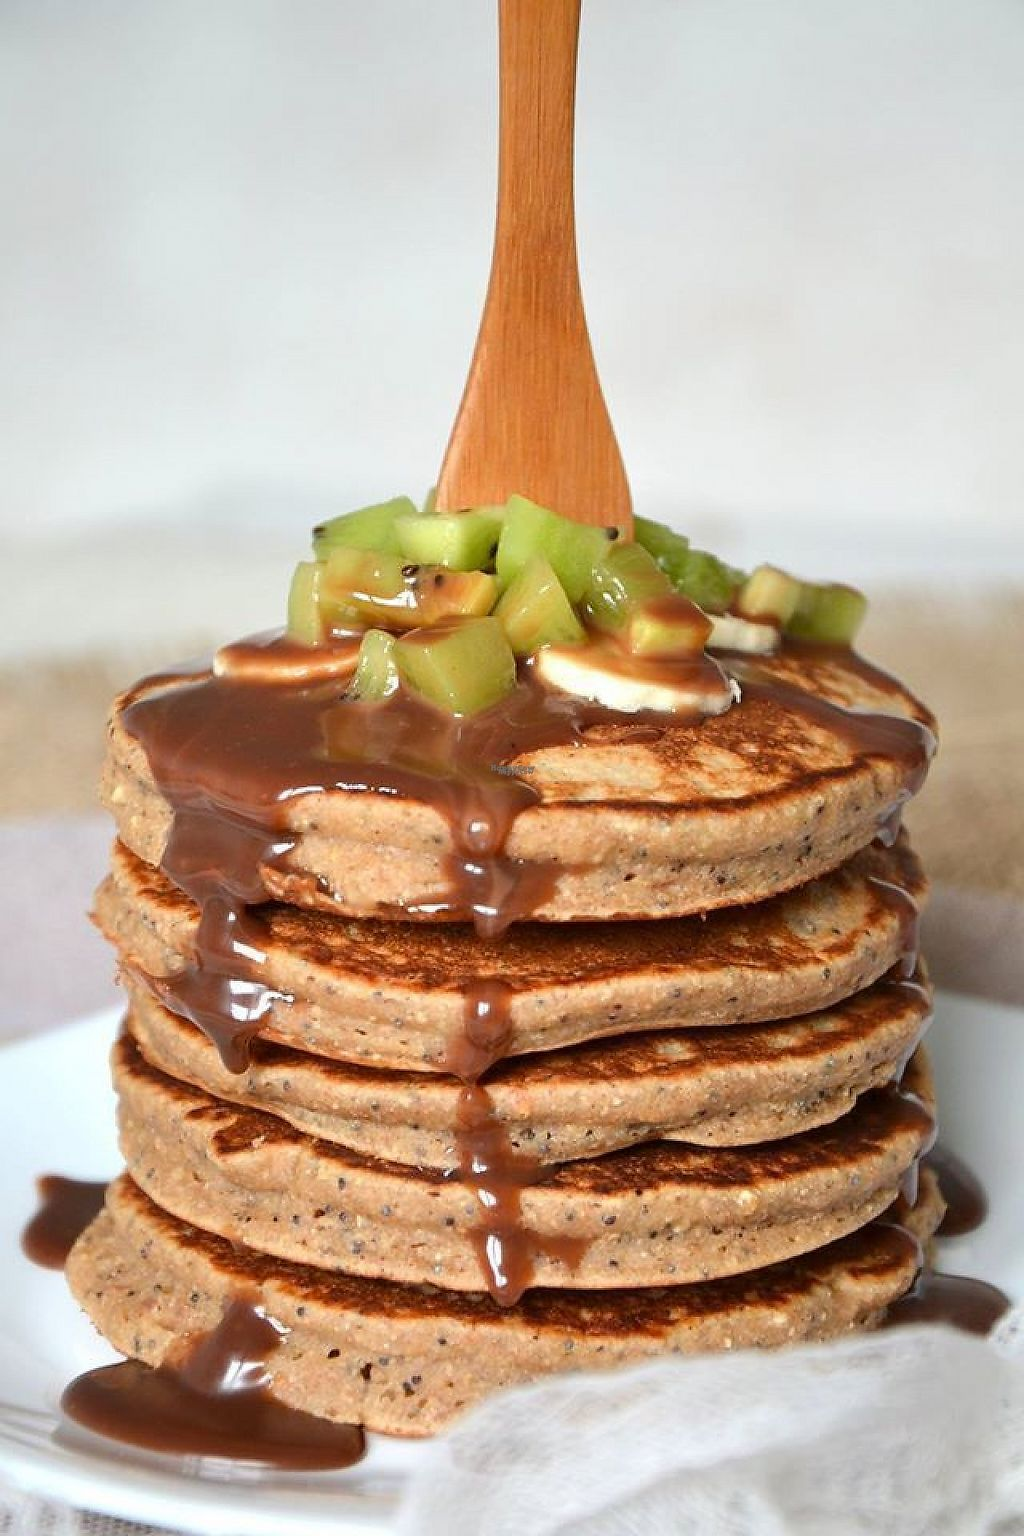 "Photo of La Vie Claire  by <a href=""/members/profile/community"">community</a> <br/>vegan pancakes  <br/> February 4, 2017  - <a href='/contact/abuse/image/71975/221847'>Report</a>"